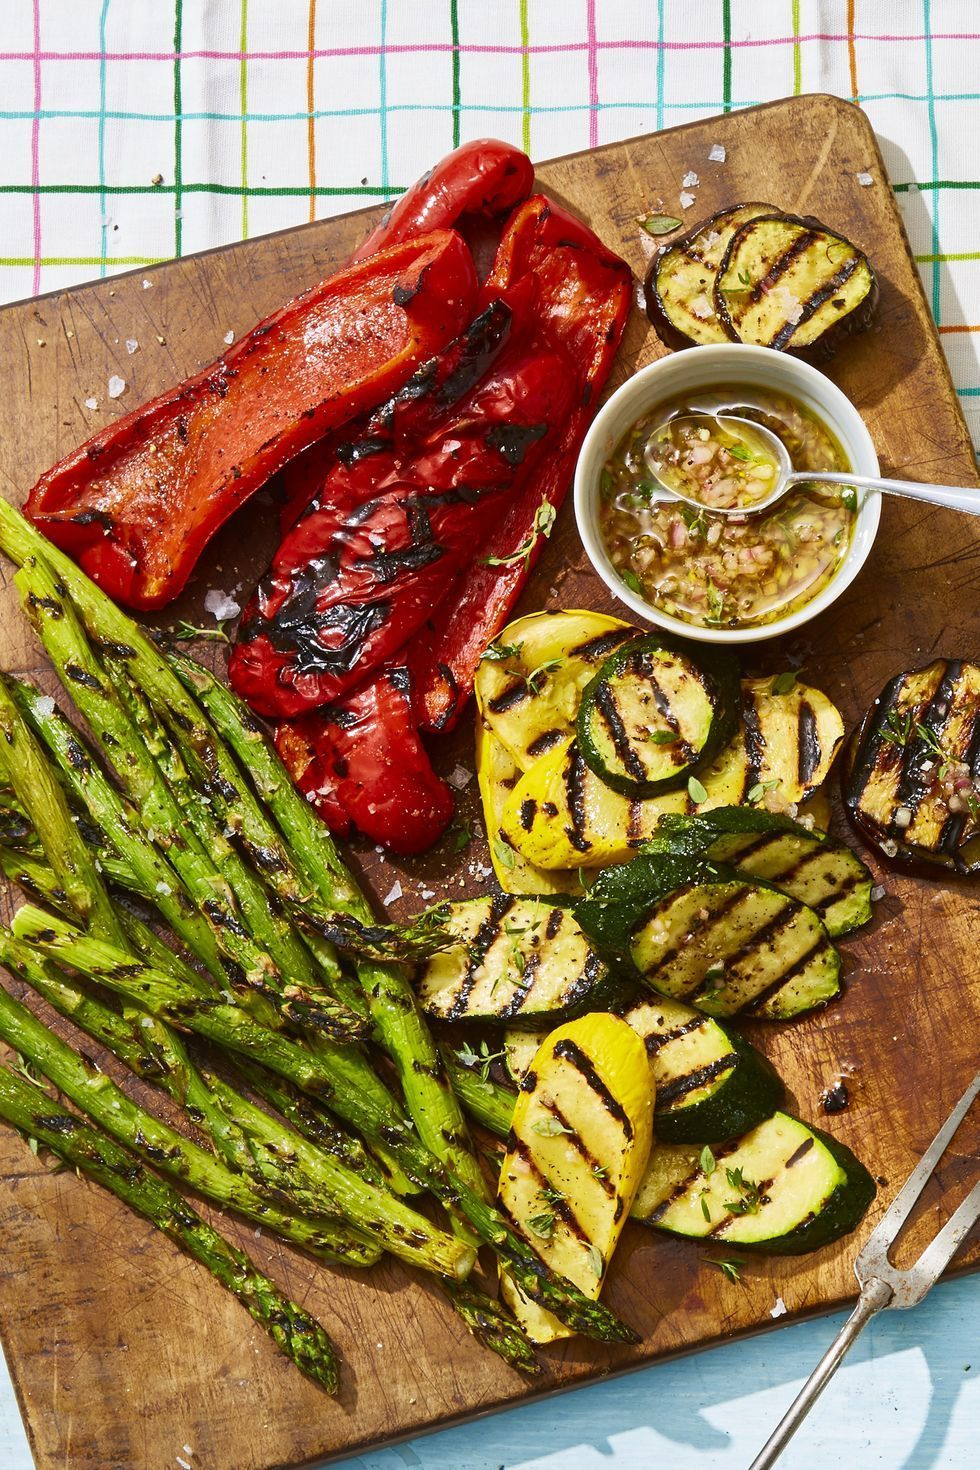 grilled veggies with honey-thyme vinaigrette